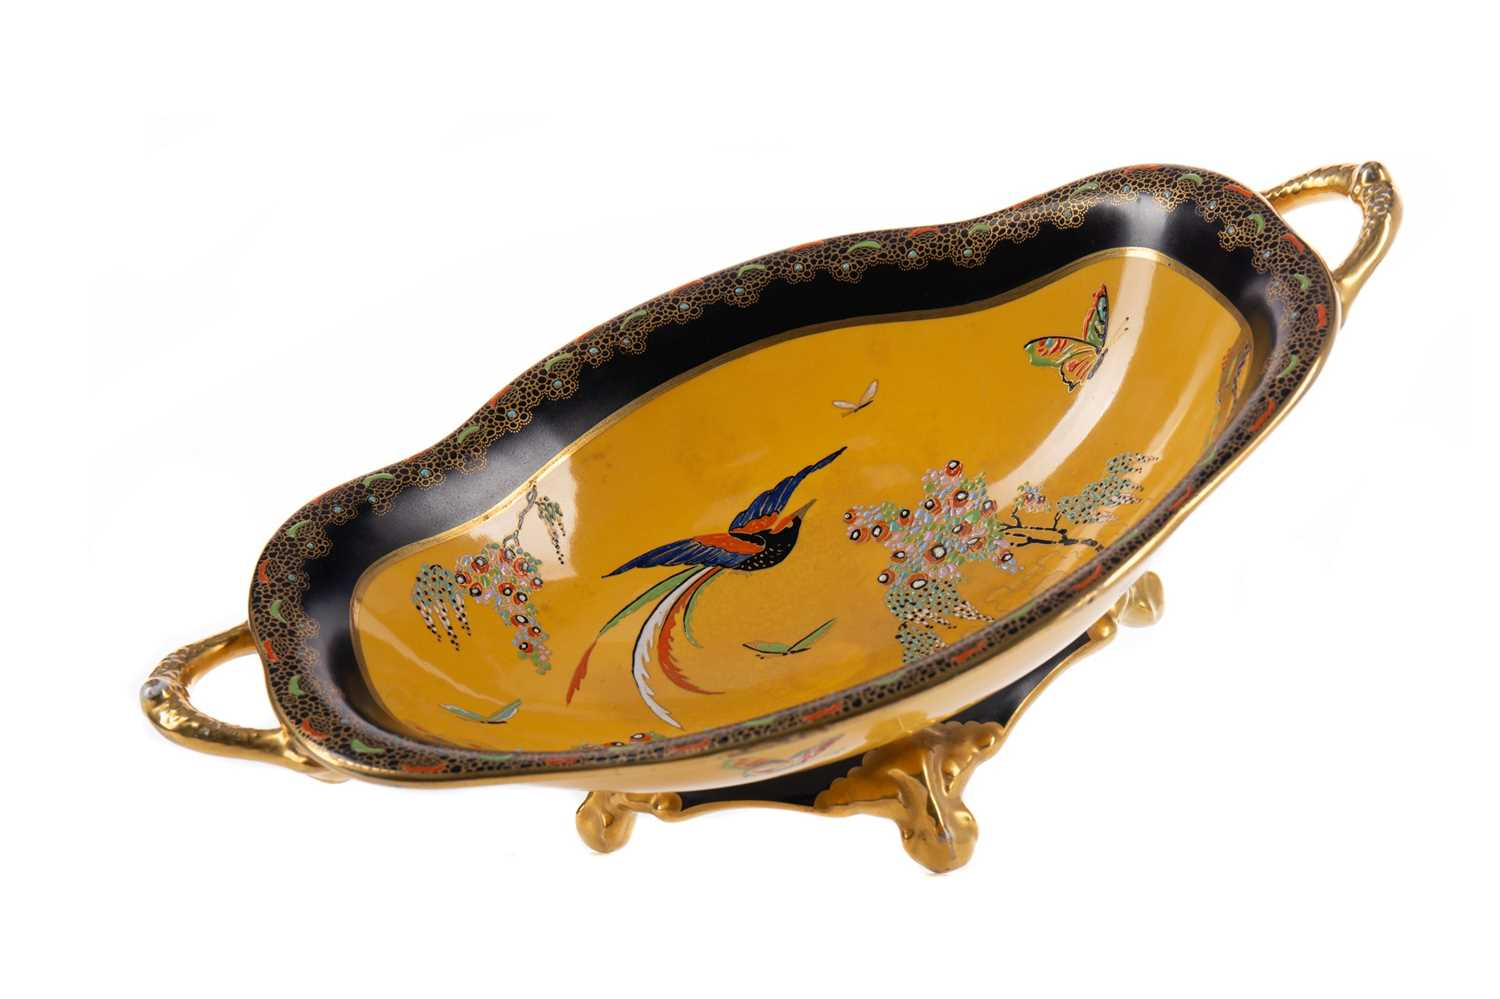 Lot 1043 - A CARLTON WARE 'PARADISE BIRD AND TREE' PATTERN COMPORT